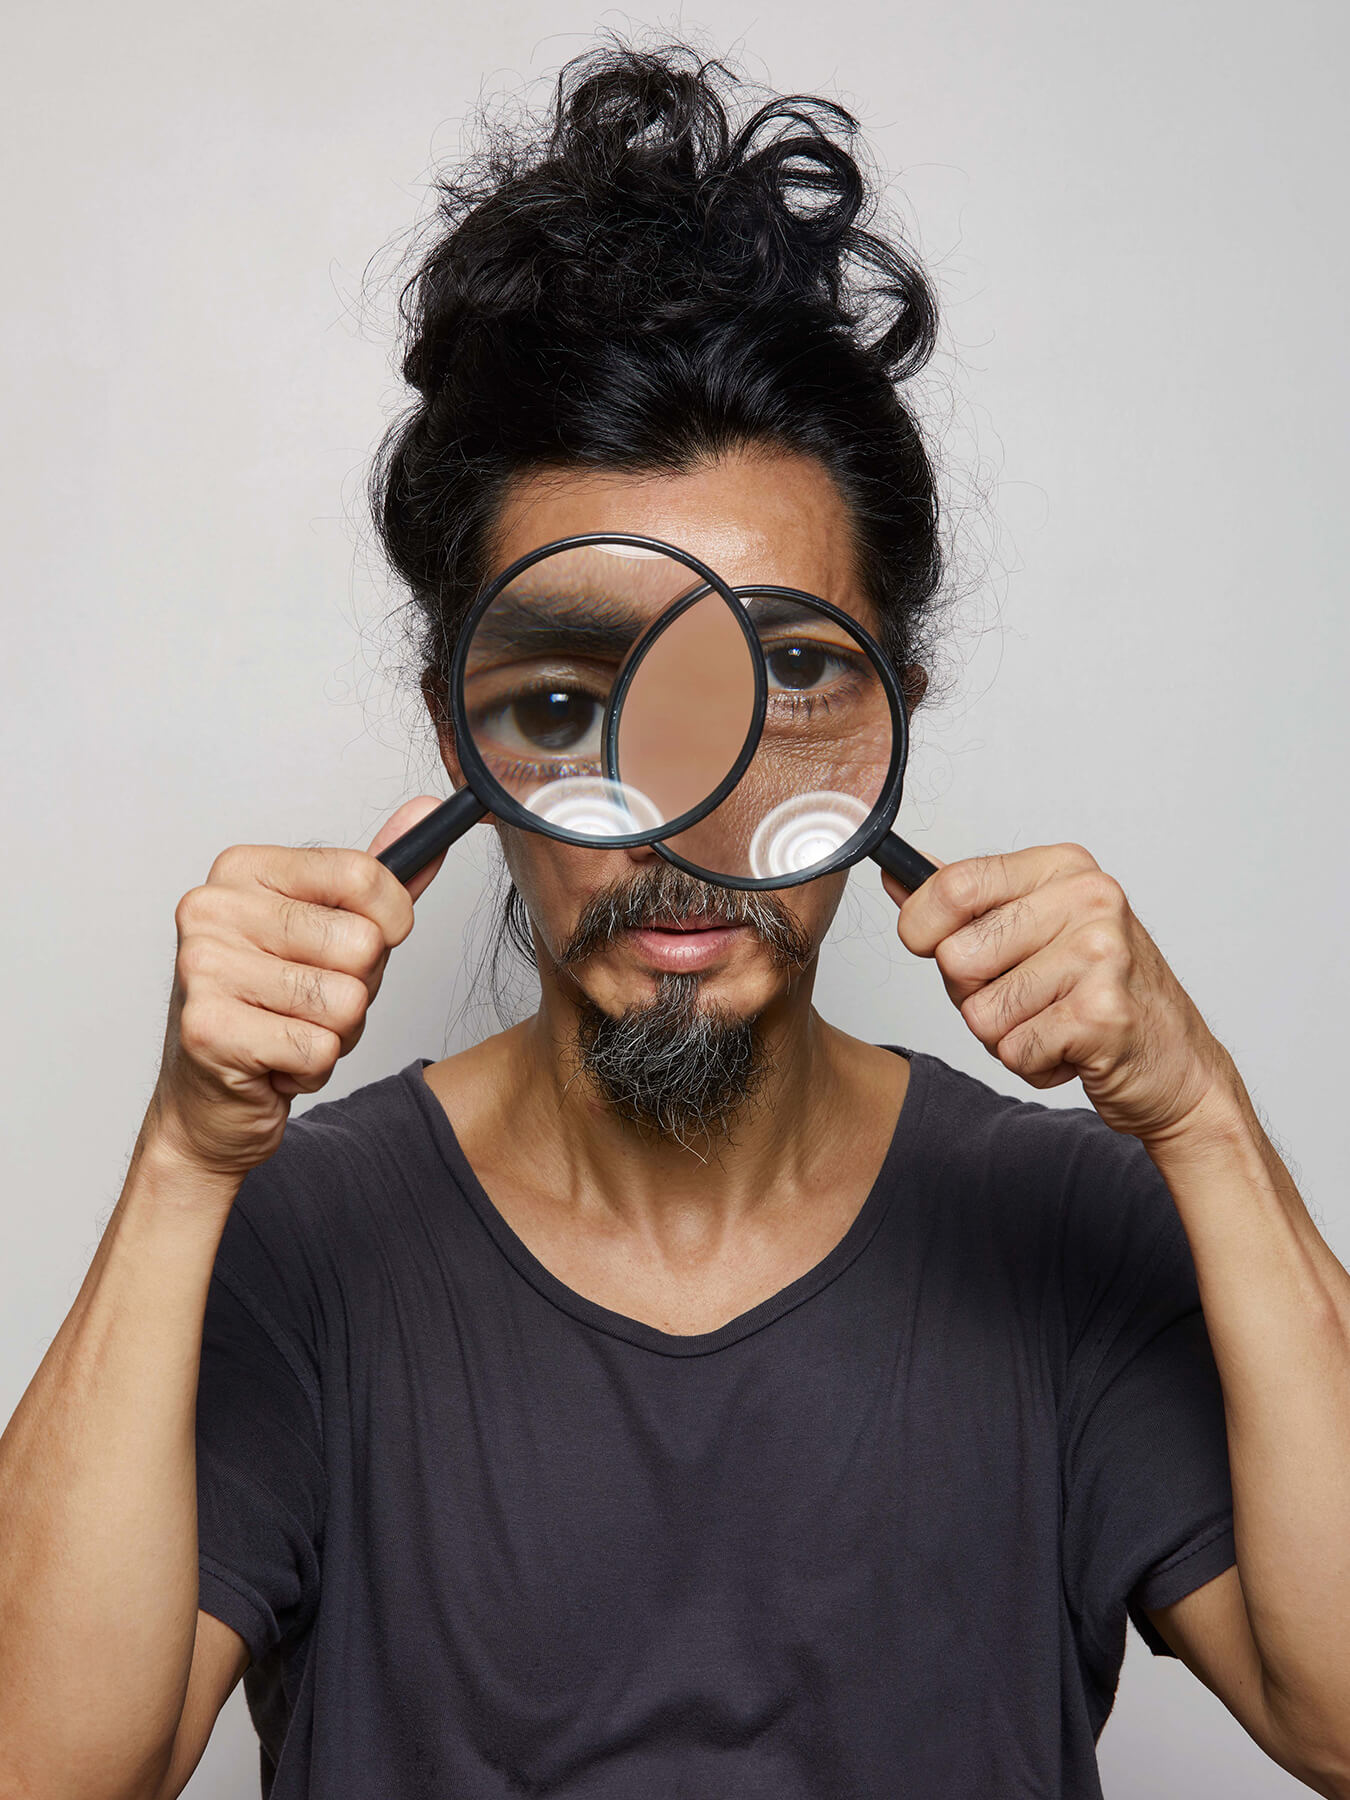 3 Oct 2017 - Seeing Double: Derong holds 2 magnifying glasses, distorting his eyes